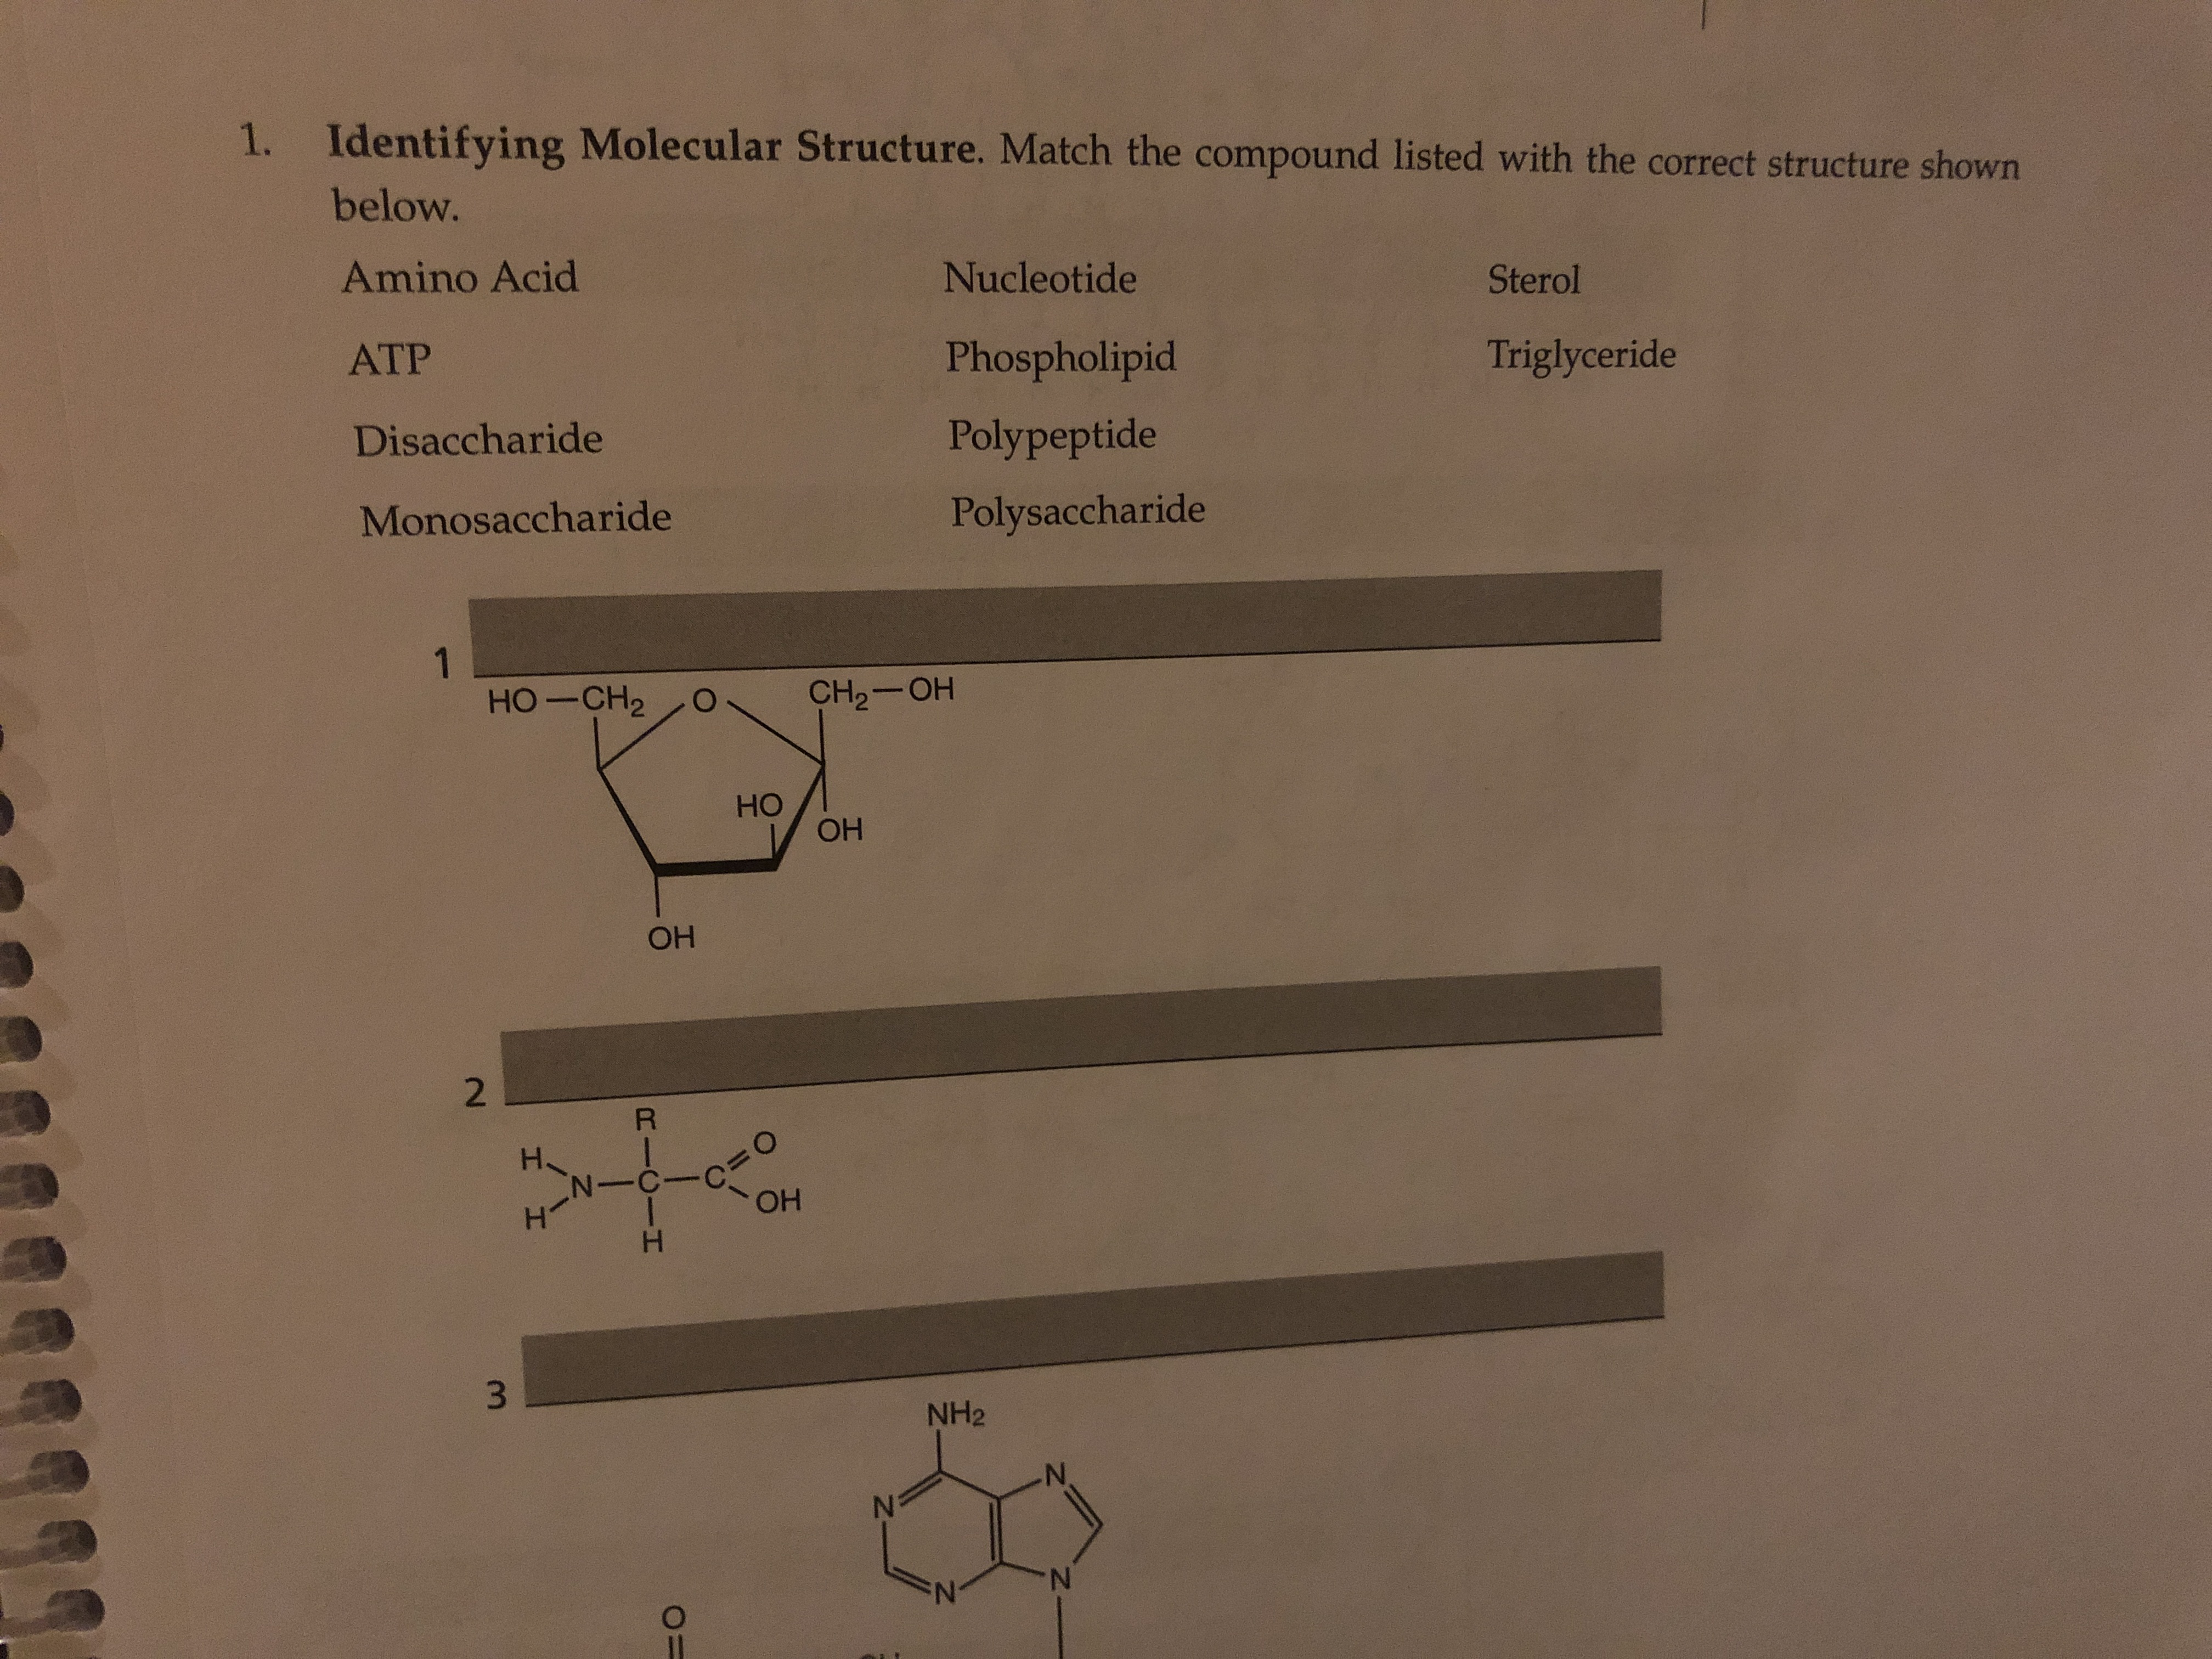 Identifying Molecular Structure. Match the compound listed with the correct structure shown 1. below. Amino Acid Nucleotide Sterol Triglyceride Phospholipid ATP Polypeptide Disaccharide Polysaccharide Monosaccharide 1 HO-CH2 CH2-OH Но ОН ОН 2 ОН 3. NH2 N. RICIH